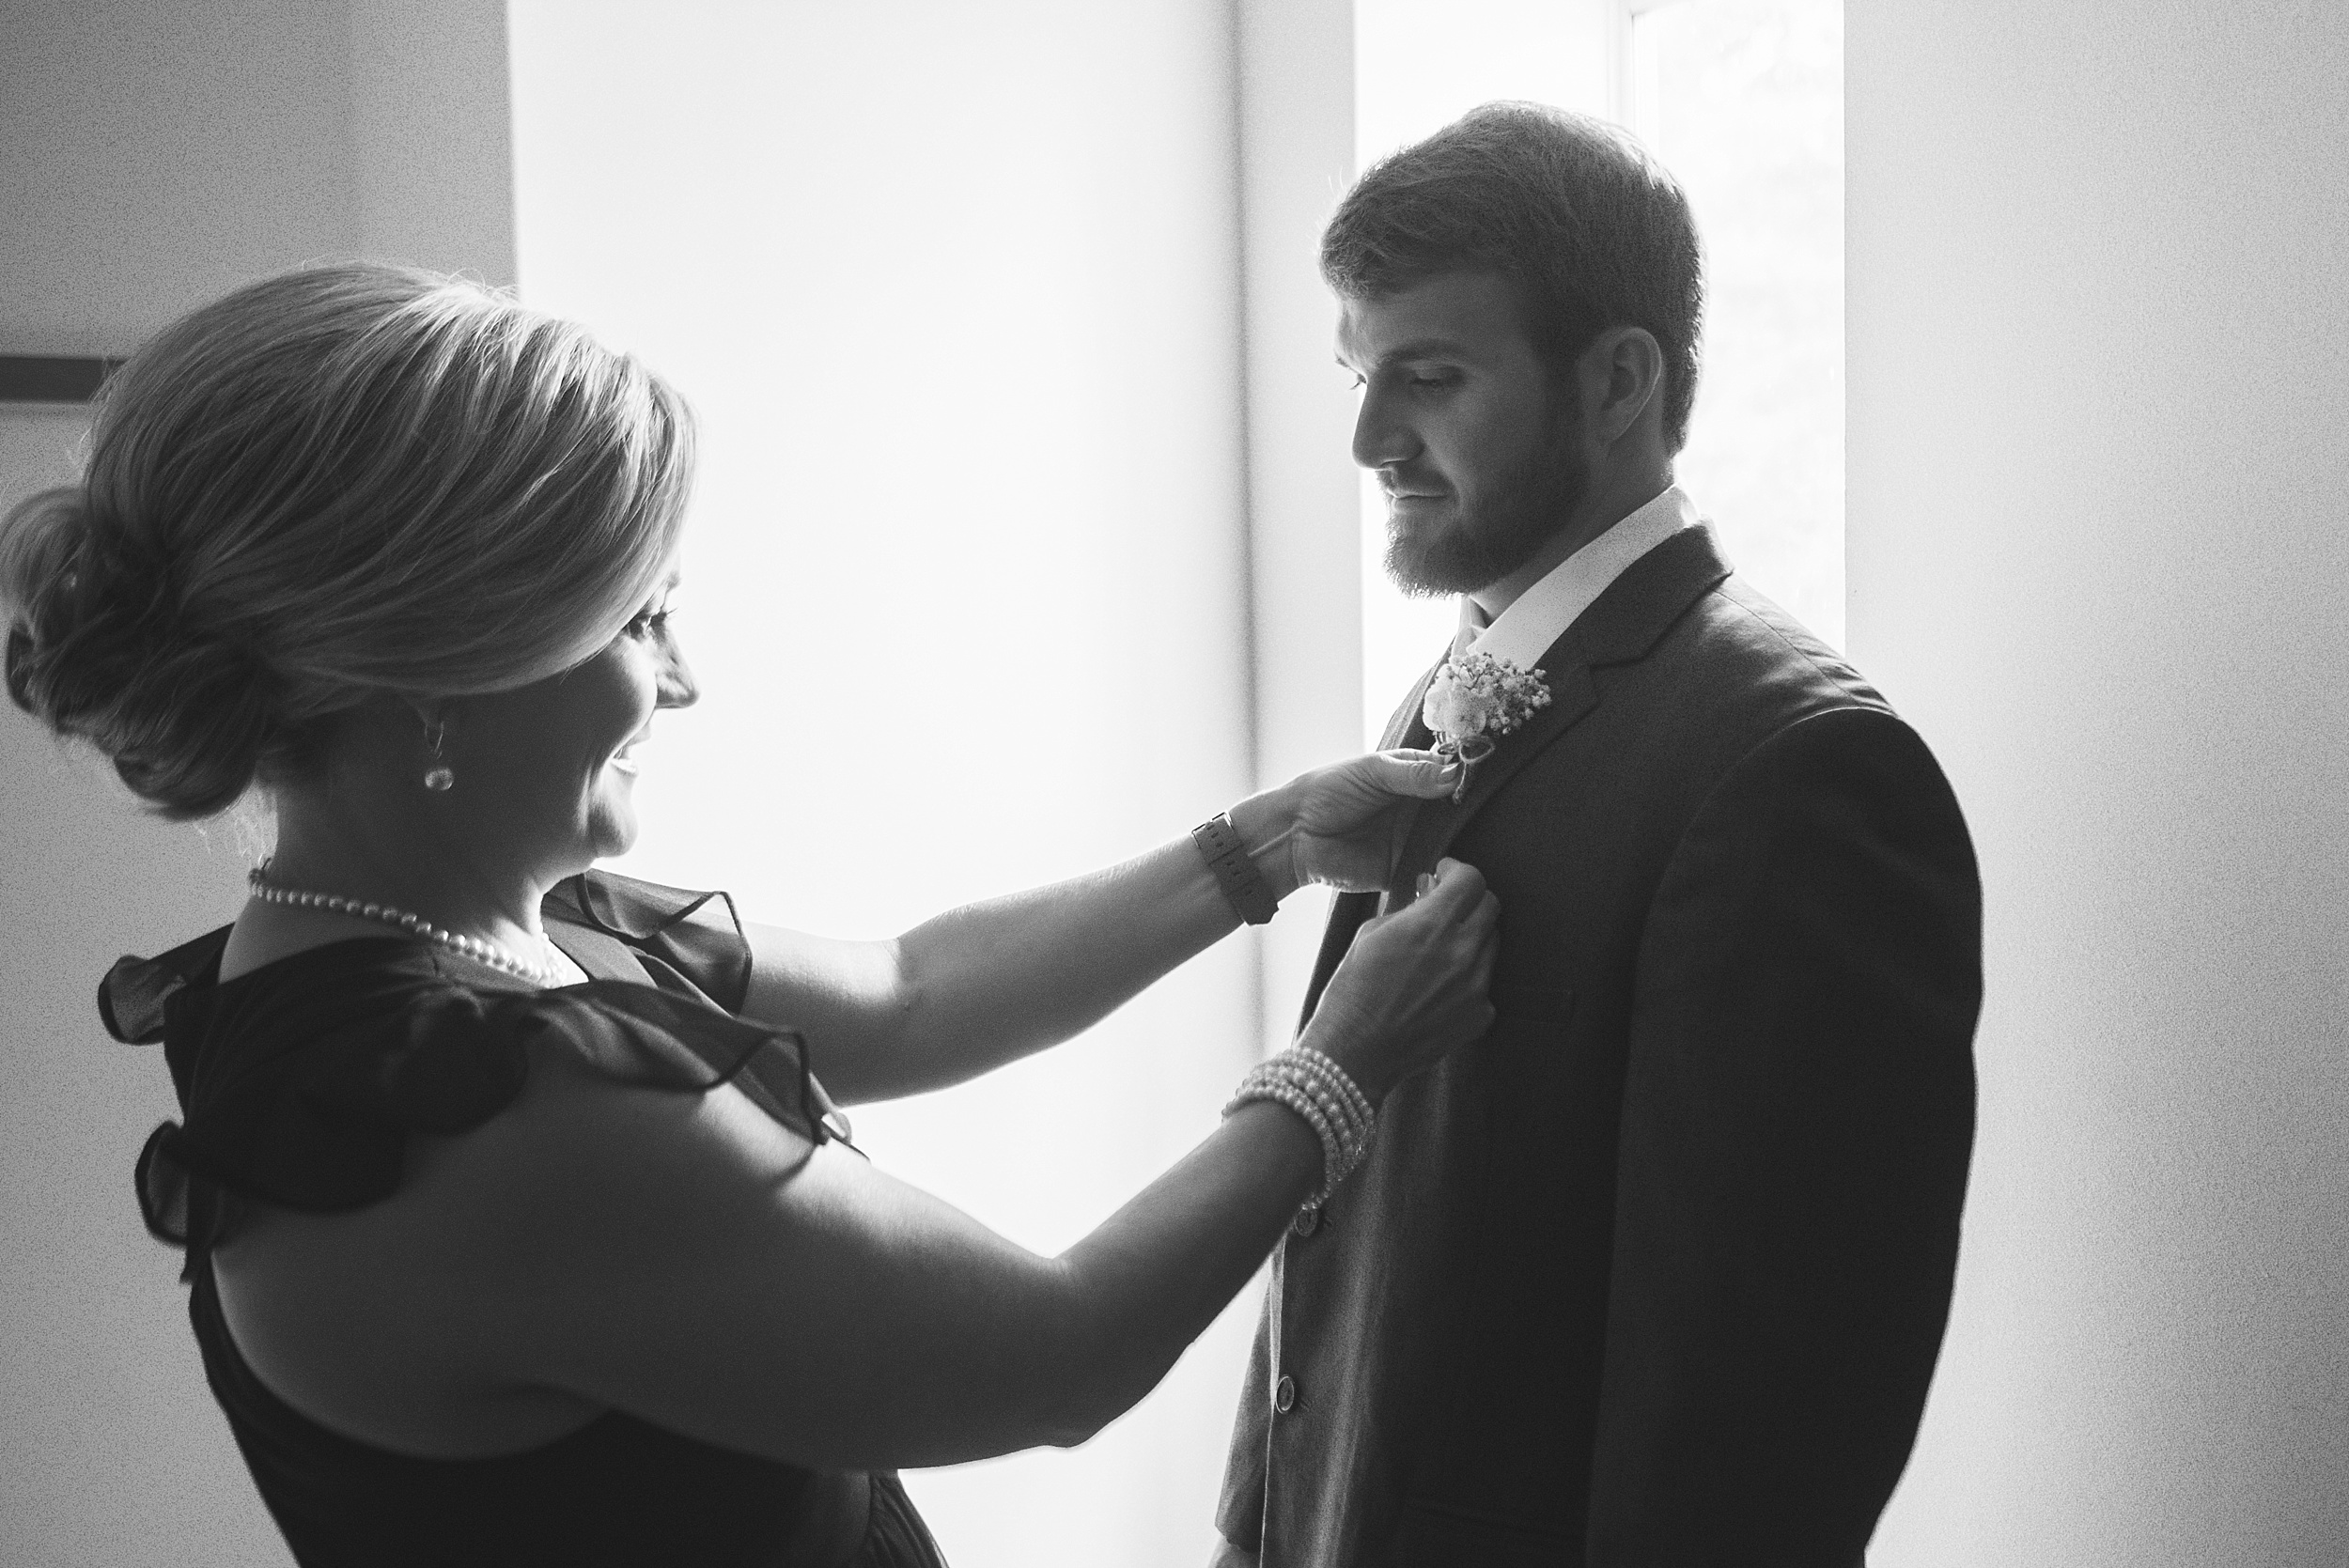 Mother of groom pins on the groom's boutonniere in front of a window